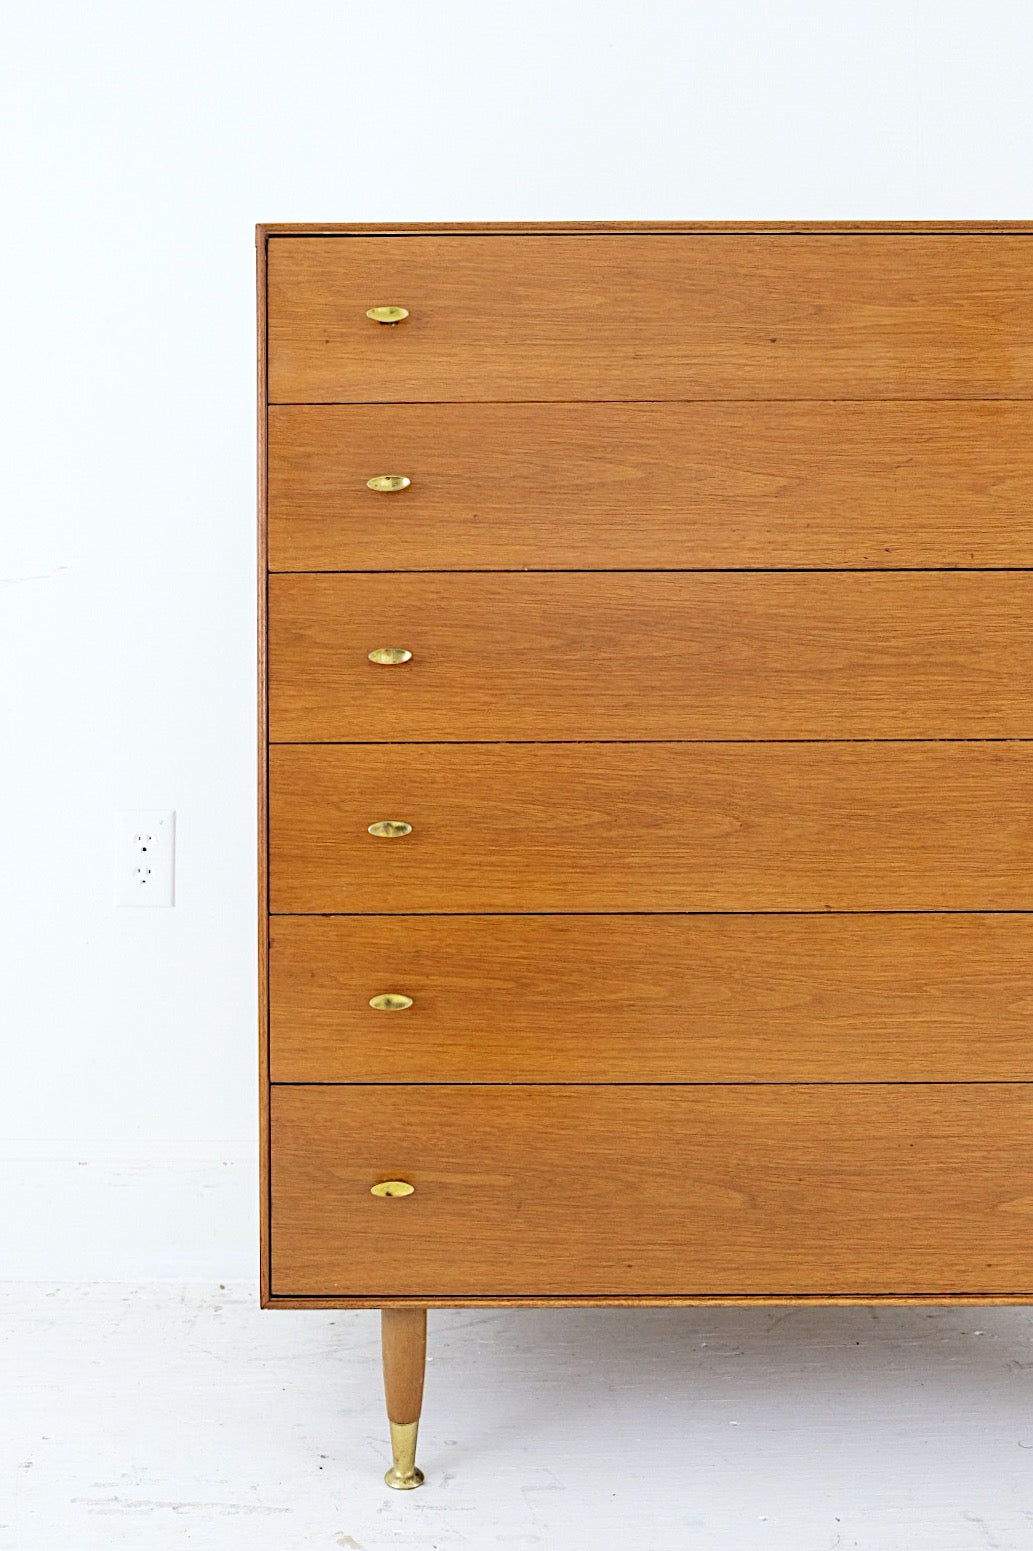 #1 RWAY Tall Dresser Five Drawer Mid Century Modern Brass Pulls Steel Framing